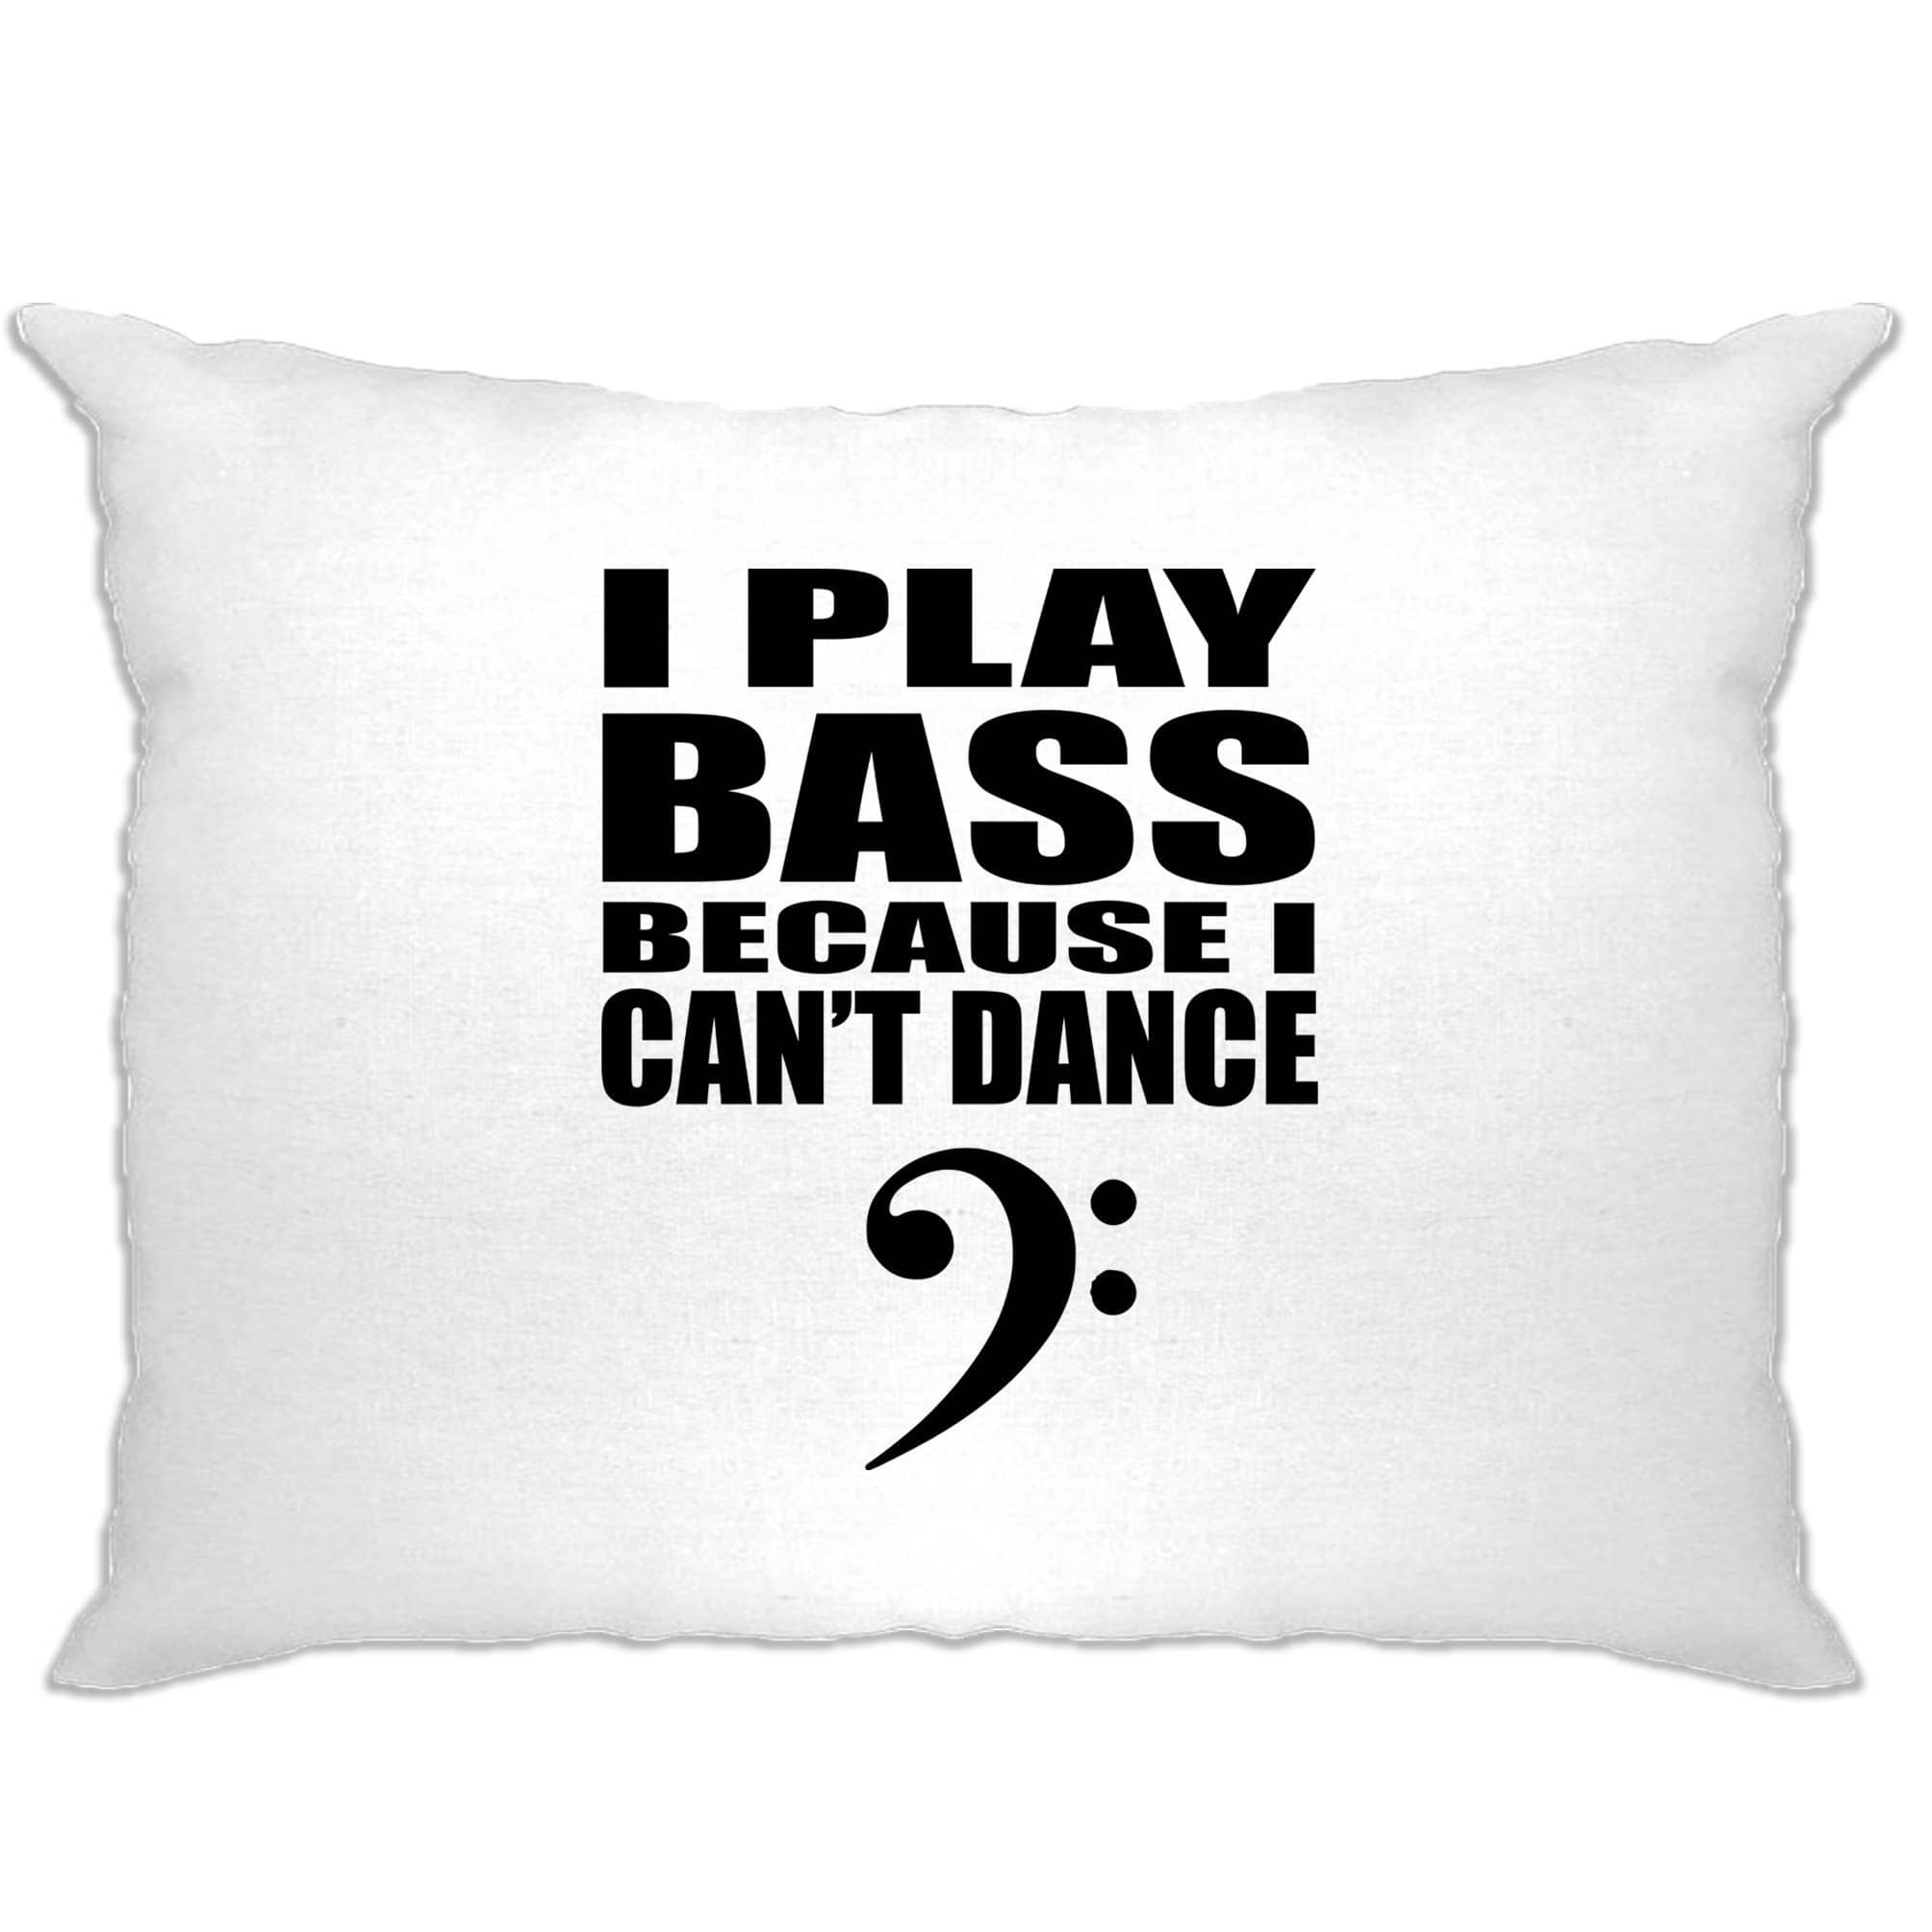 Novelty Music Pillow Case I Play Bass Because Can't Dance